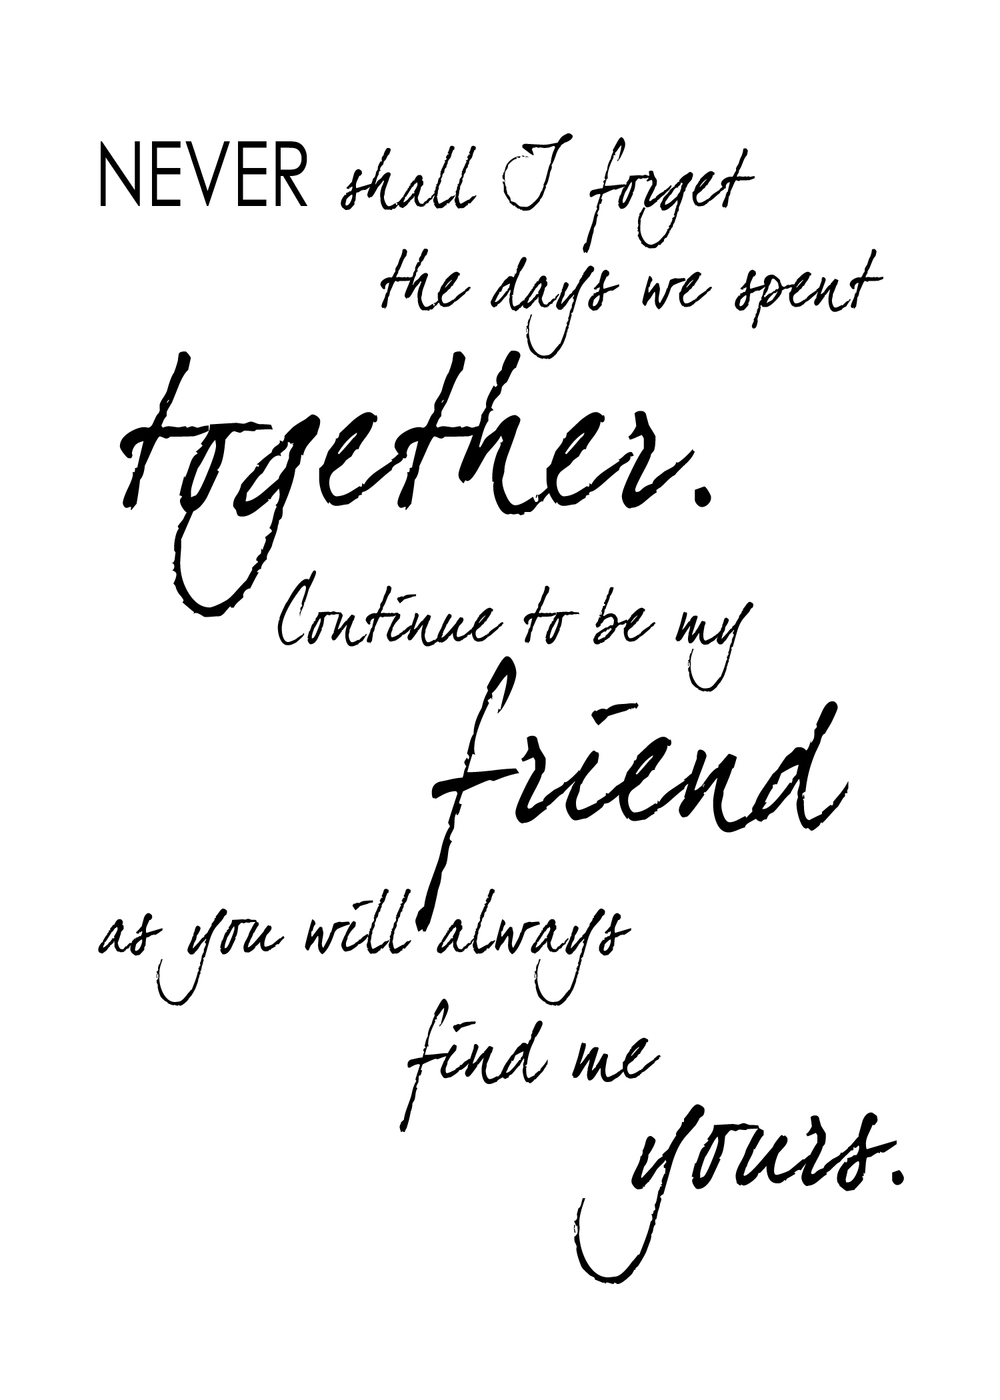 Friend Quotes Free Printables Friendship Quotes  Brown Paper Moon Designs